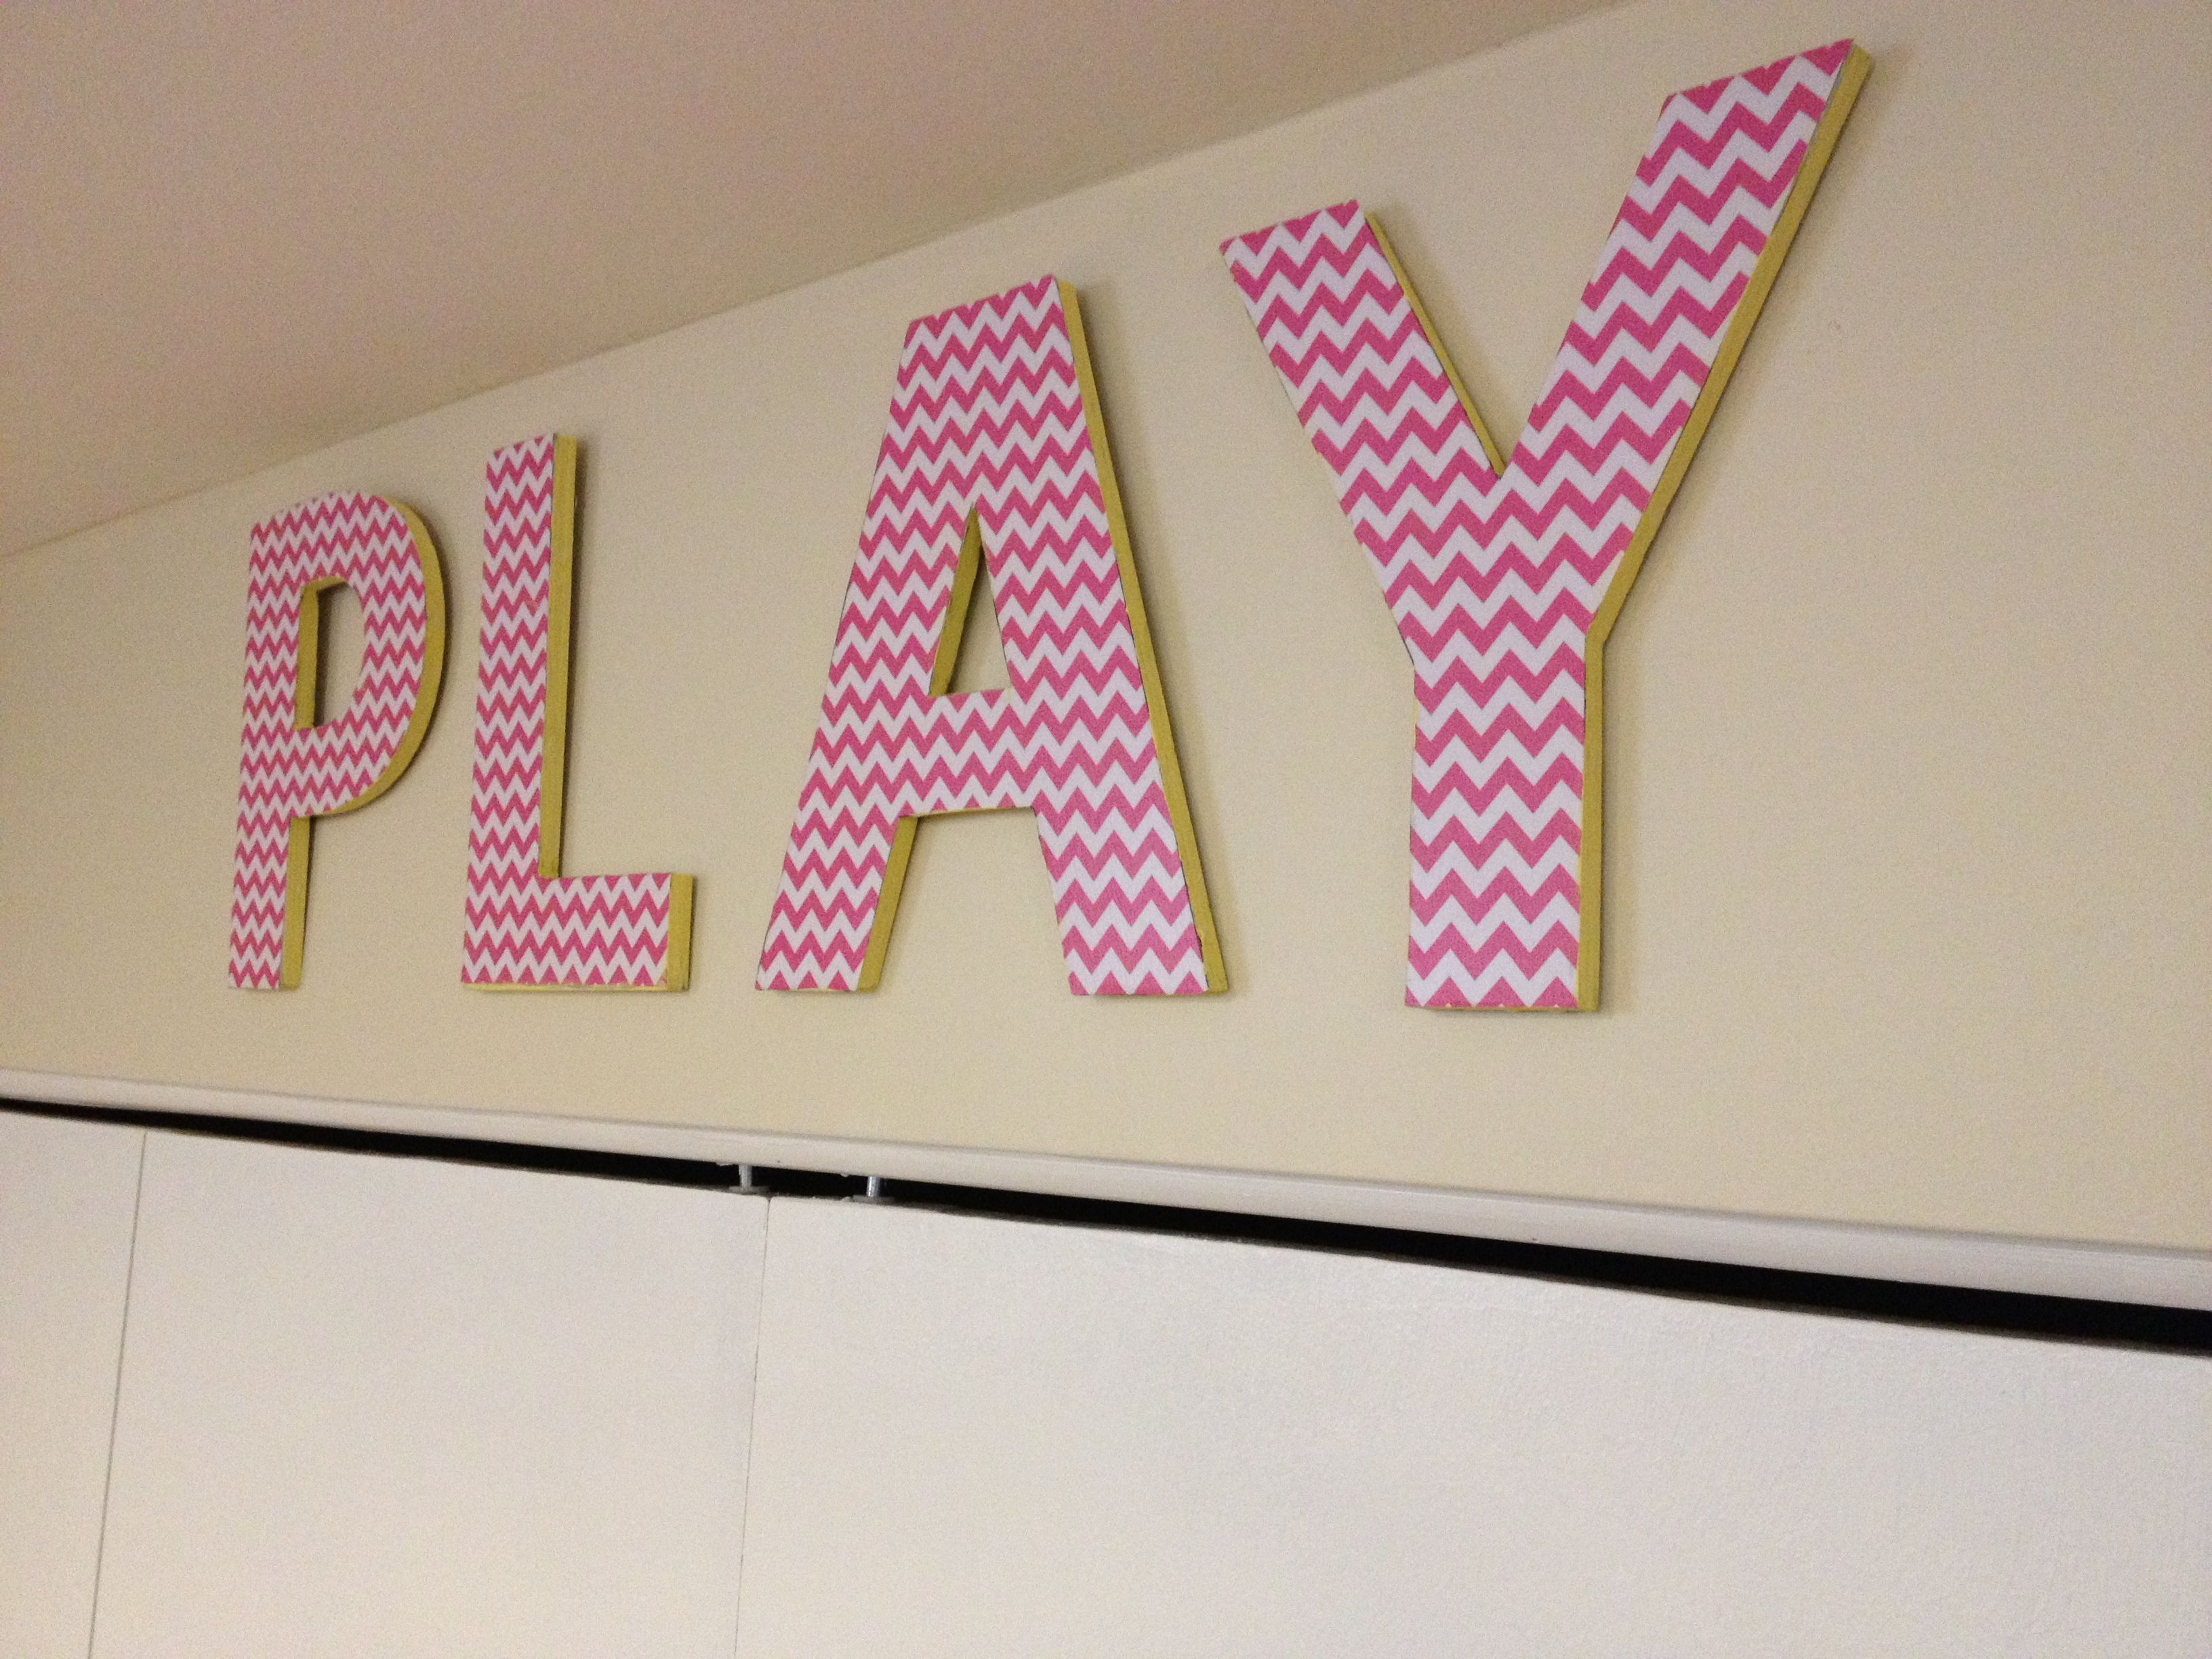 My First Mod Podge Project 1 Cardboard Letters From Hobby Lobby Pink Chevron Scrapbook Paper Mod Podg Playroom Wall Art Cardboard Letters Playroom